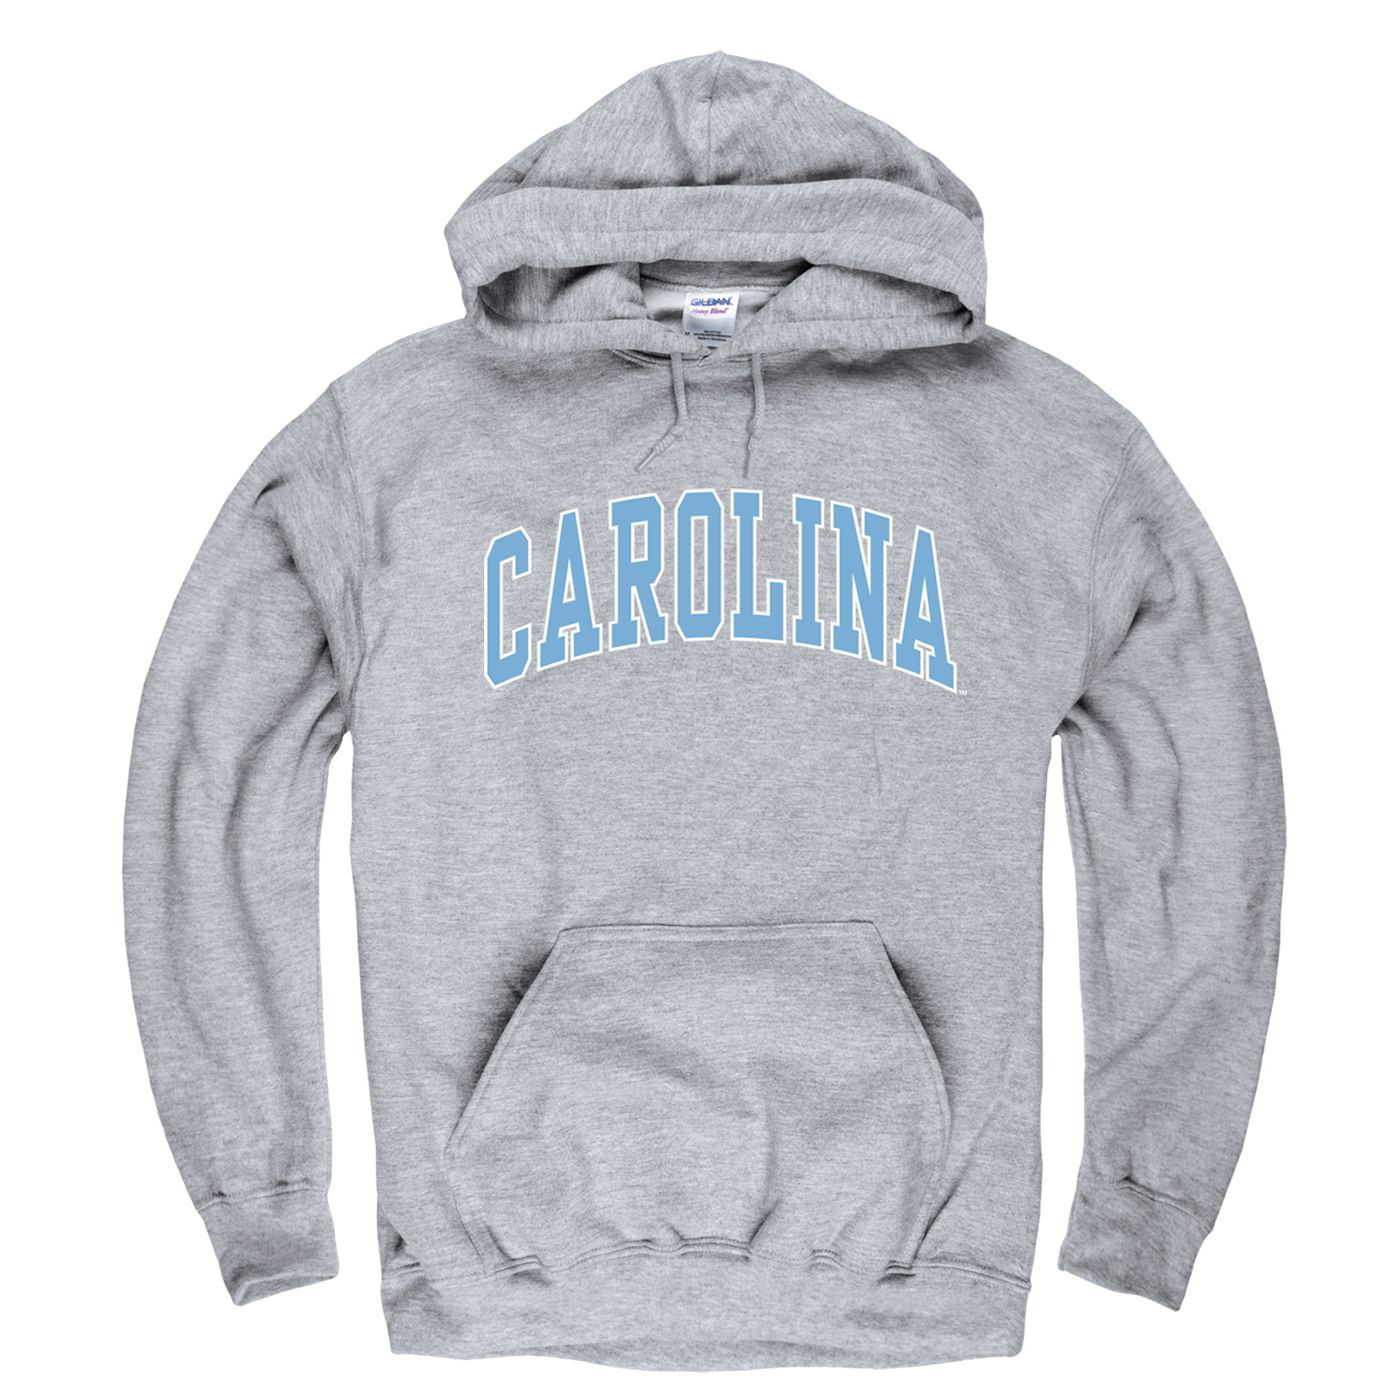 carolina sweatshirt